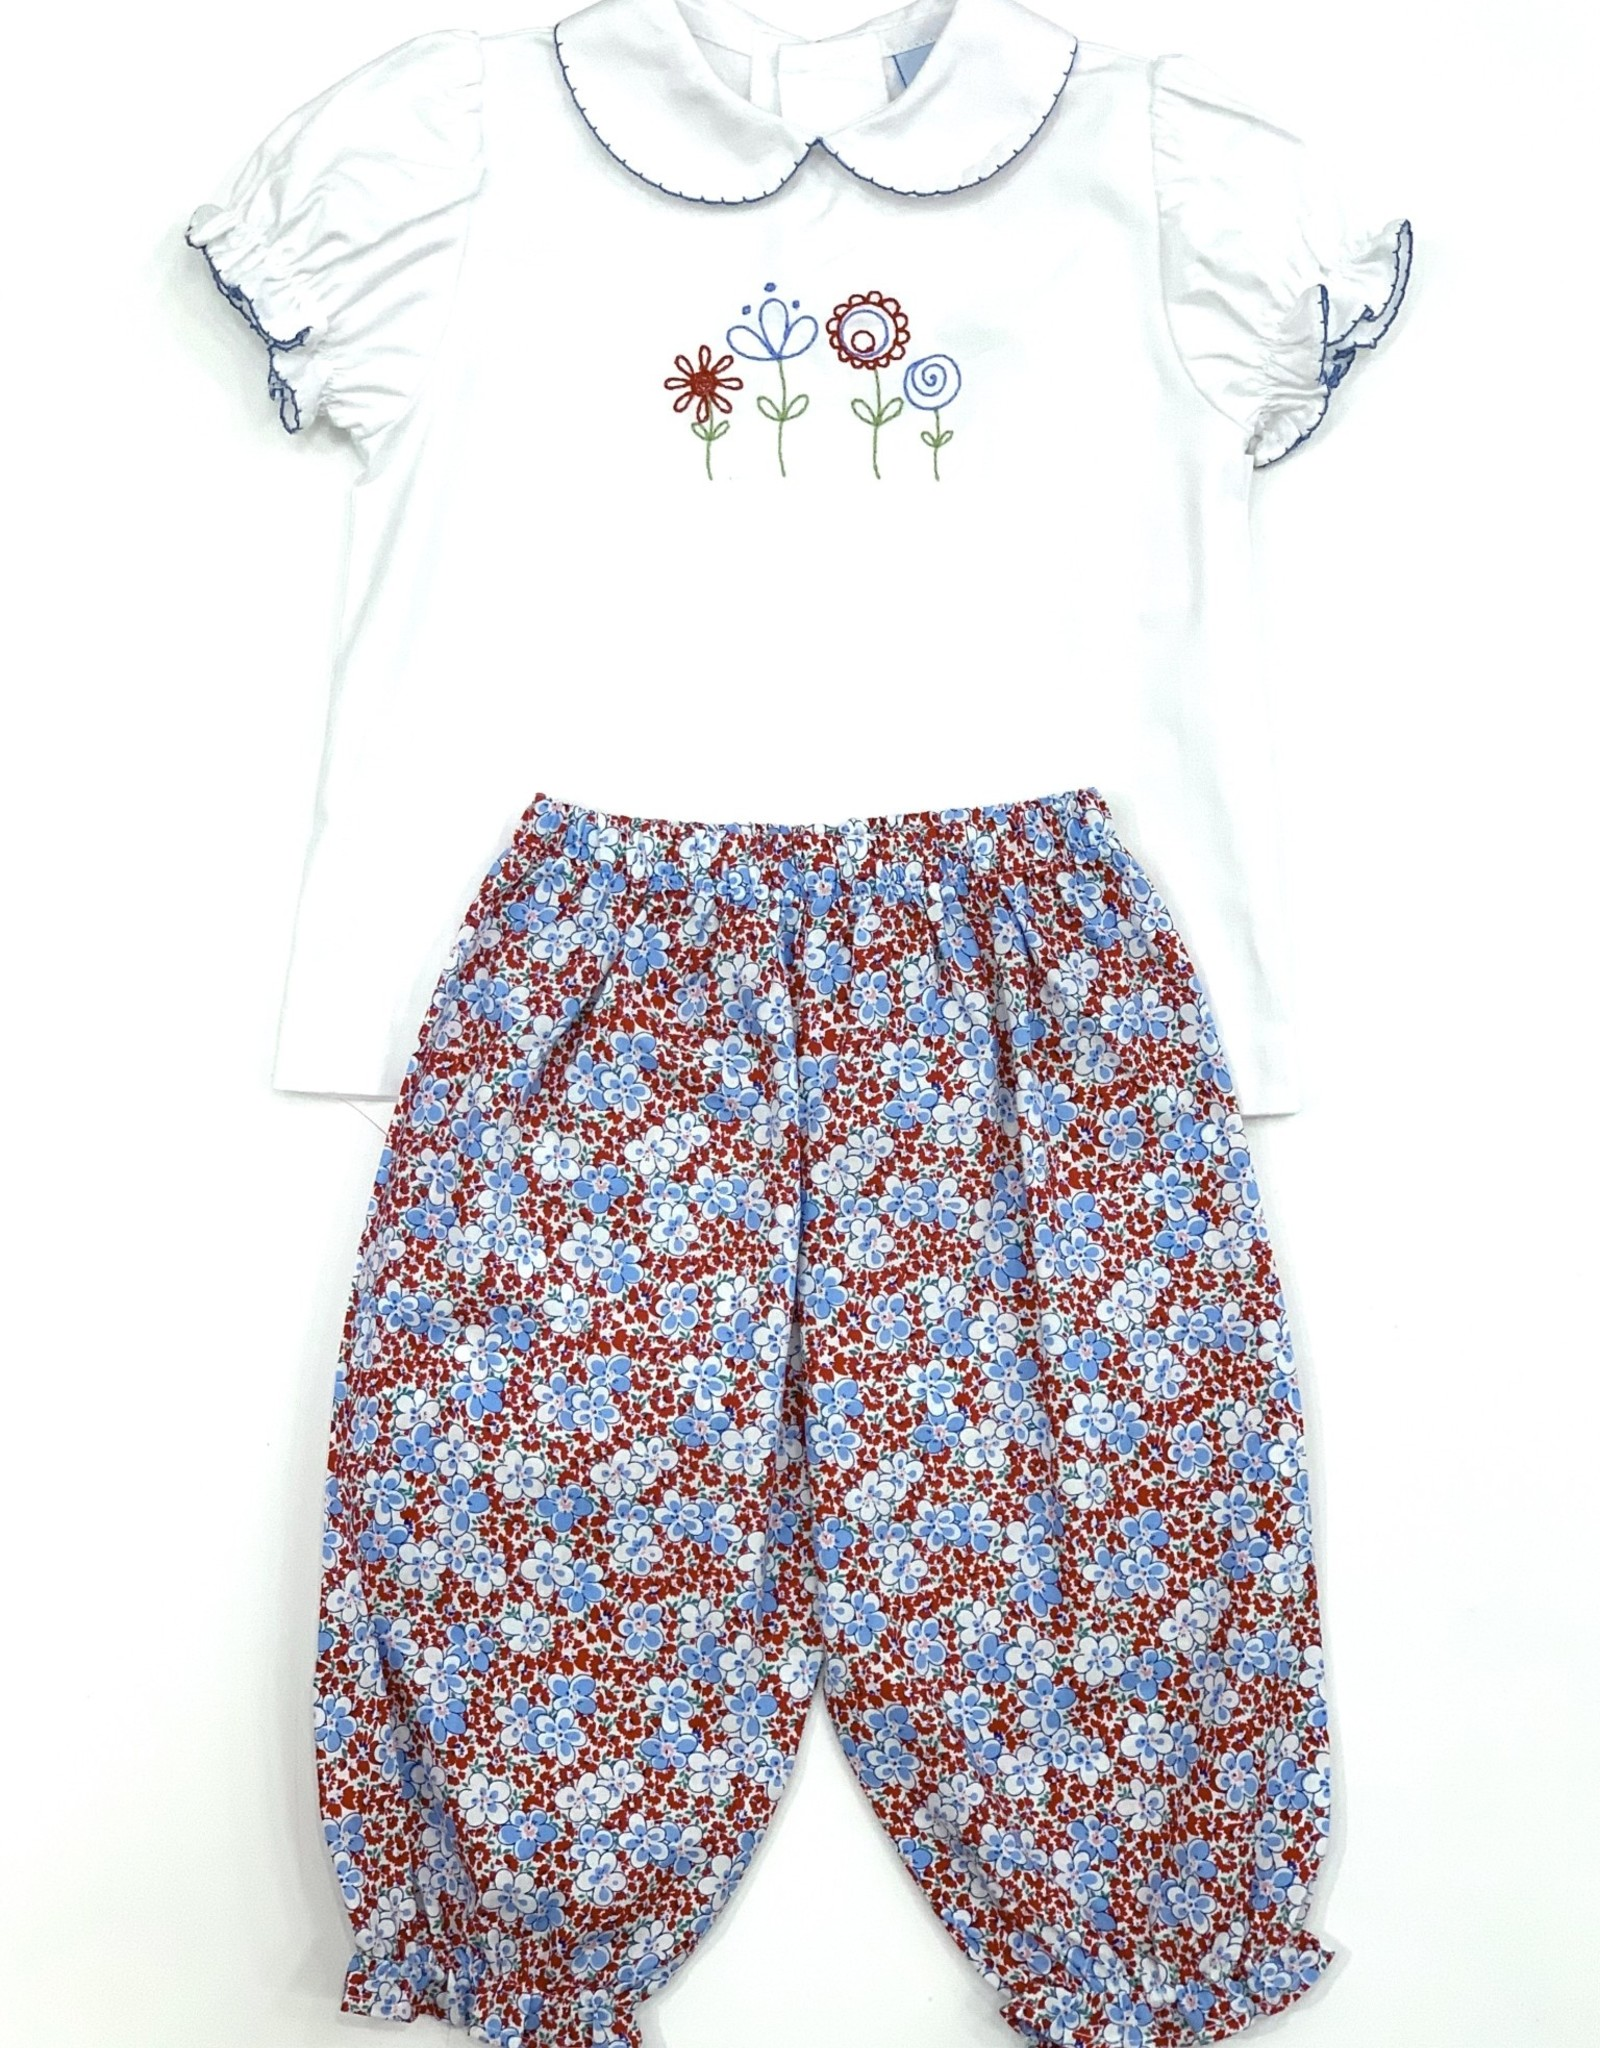 The Bailey Boys Peri Flower Girls Pant Set